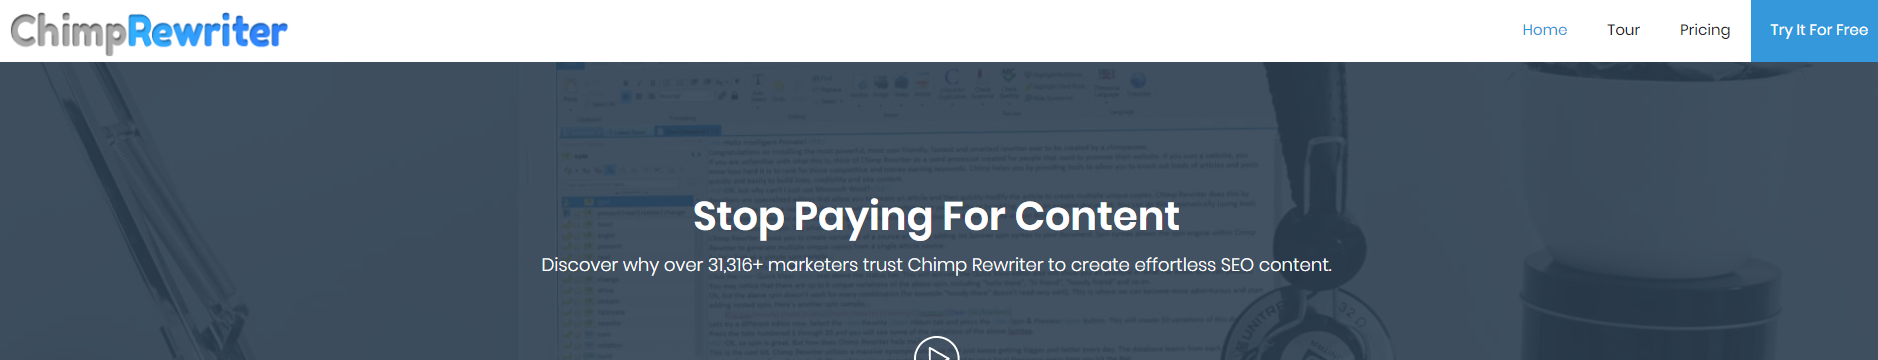 Chimp Rewriter The Best Article Rewriter and Spinner Software Indiaoncloud.com